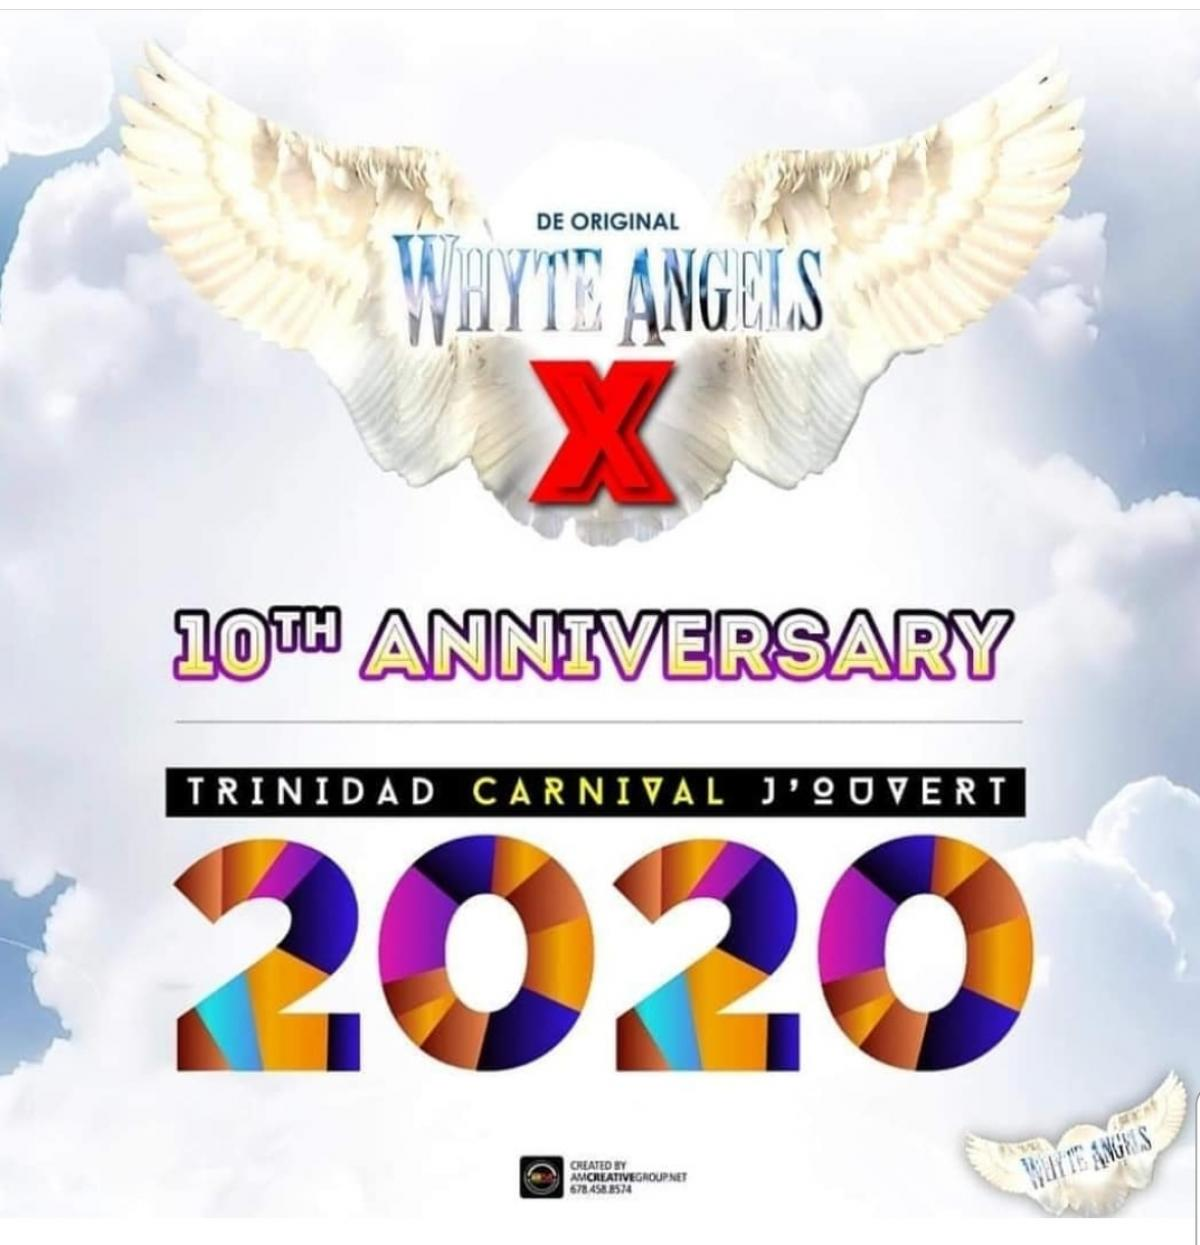 Whyte Angels 2020 J'ouvert flyer or graphic.